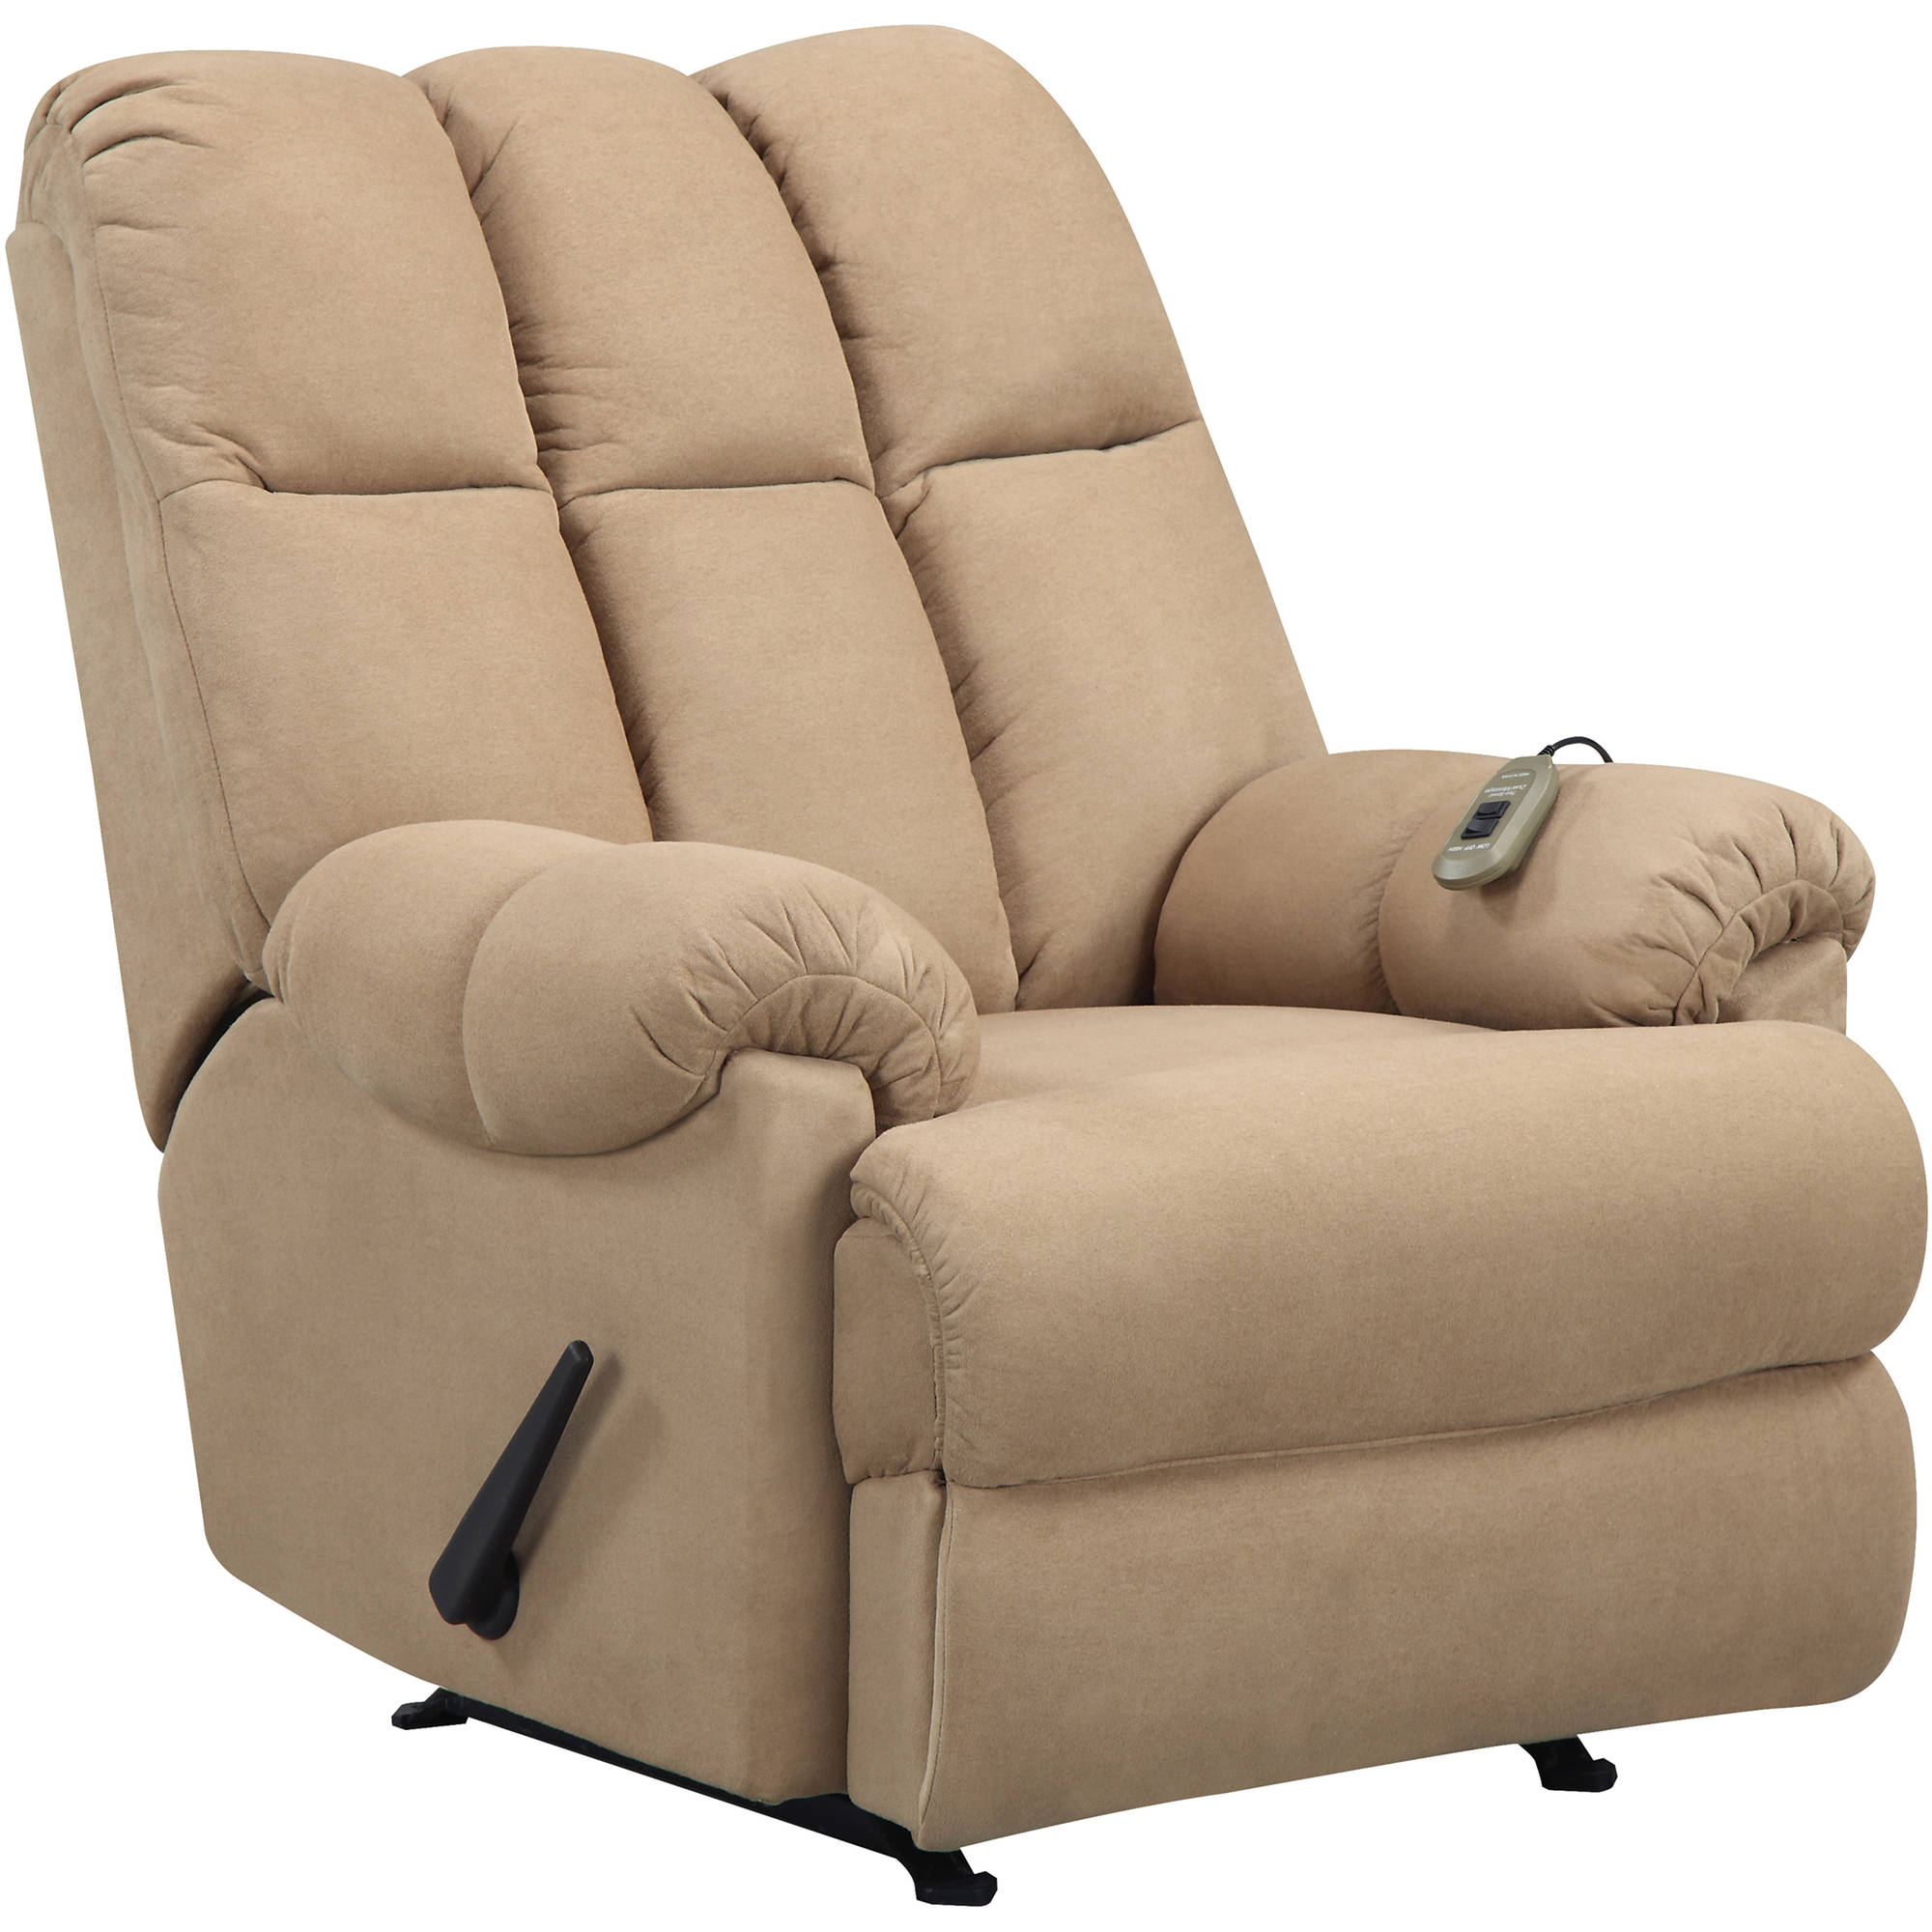 Dorel Living Padded Massage Rocker Recliner, Multiple Colors - Traveller Location